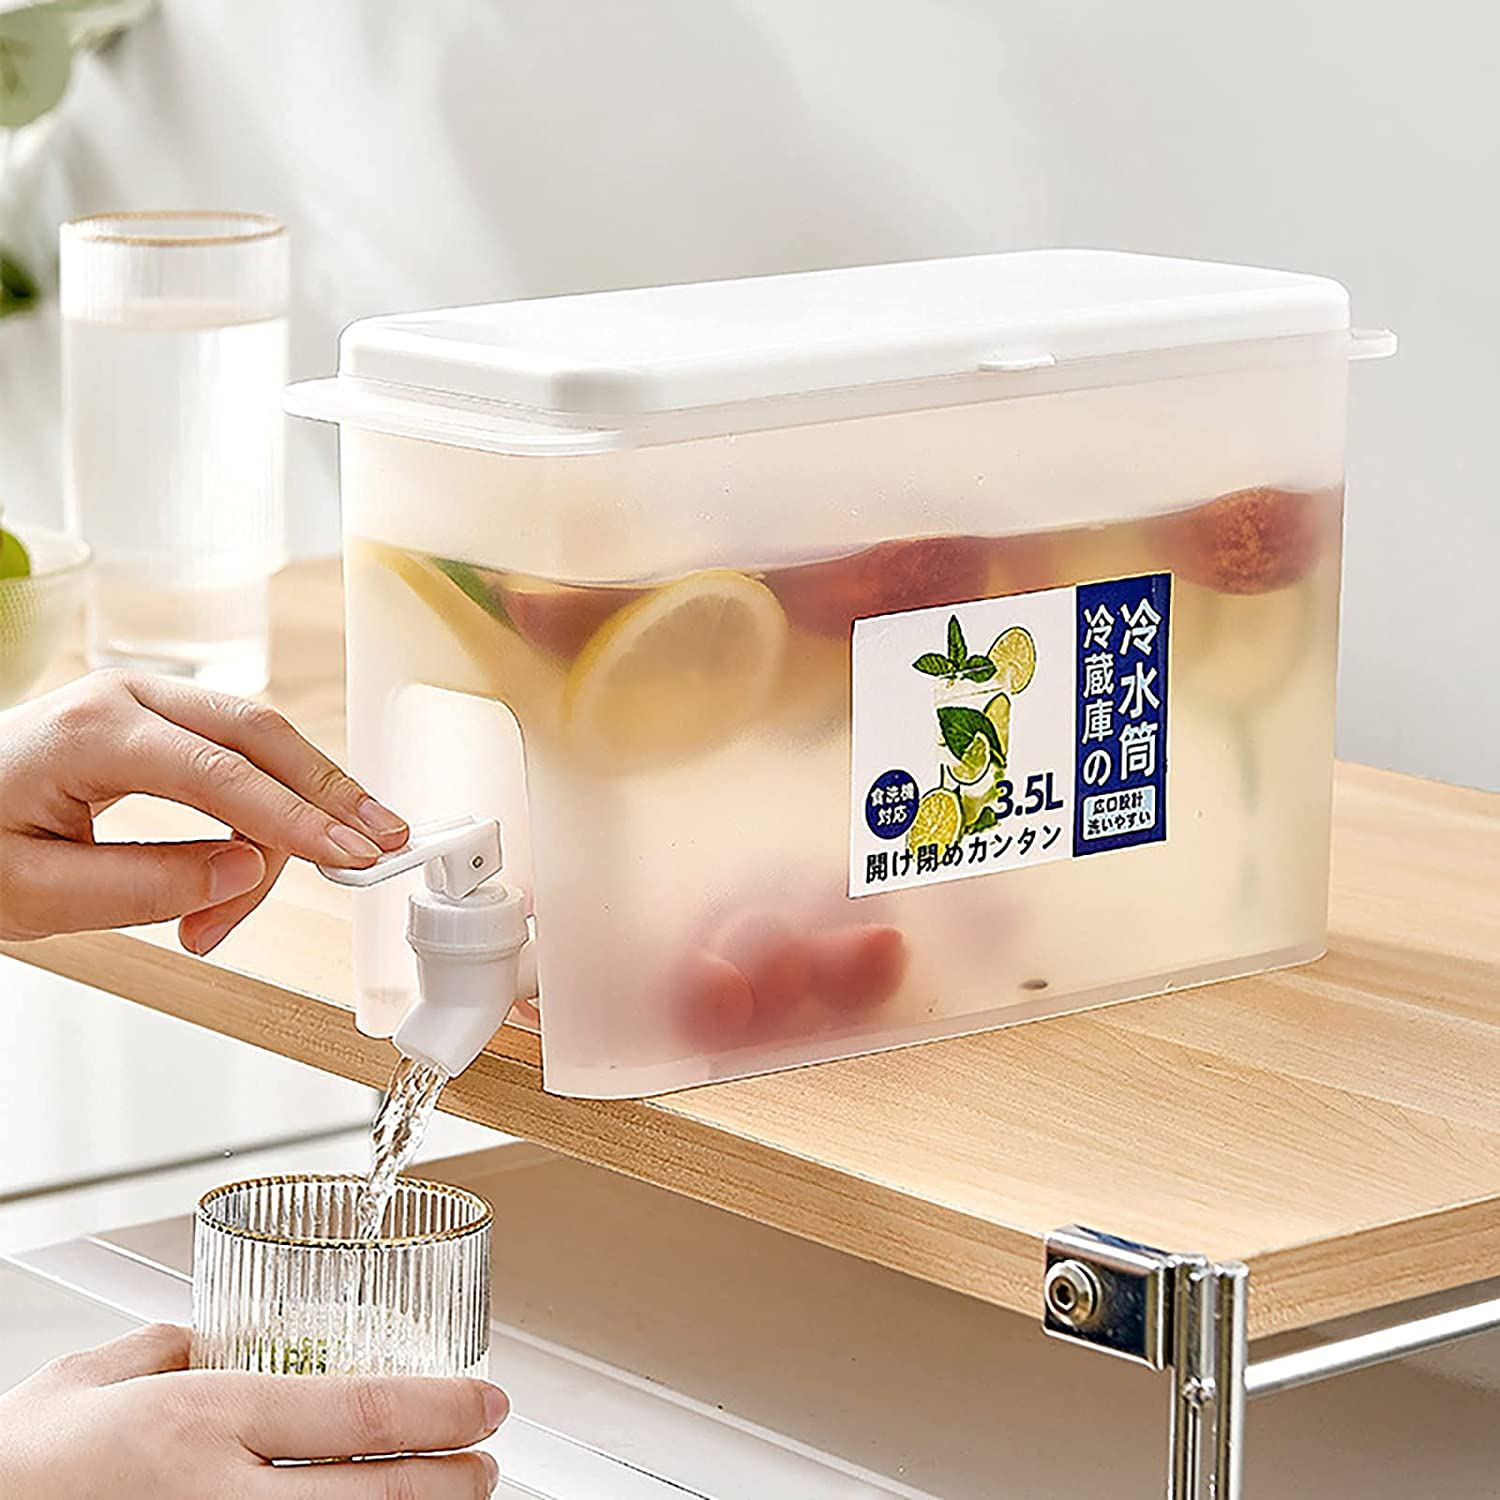 Cold Kettle Special sale item with cheap Faucet Large Teapot Capacityre Fruit Frigerator